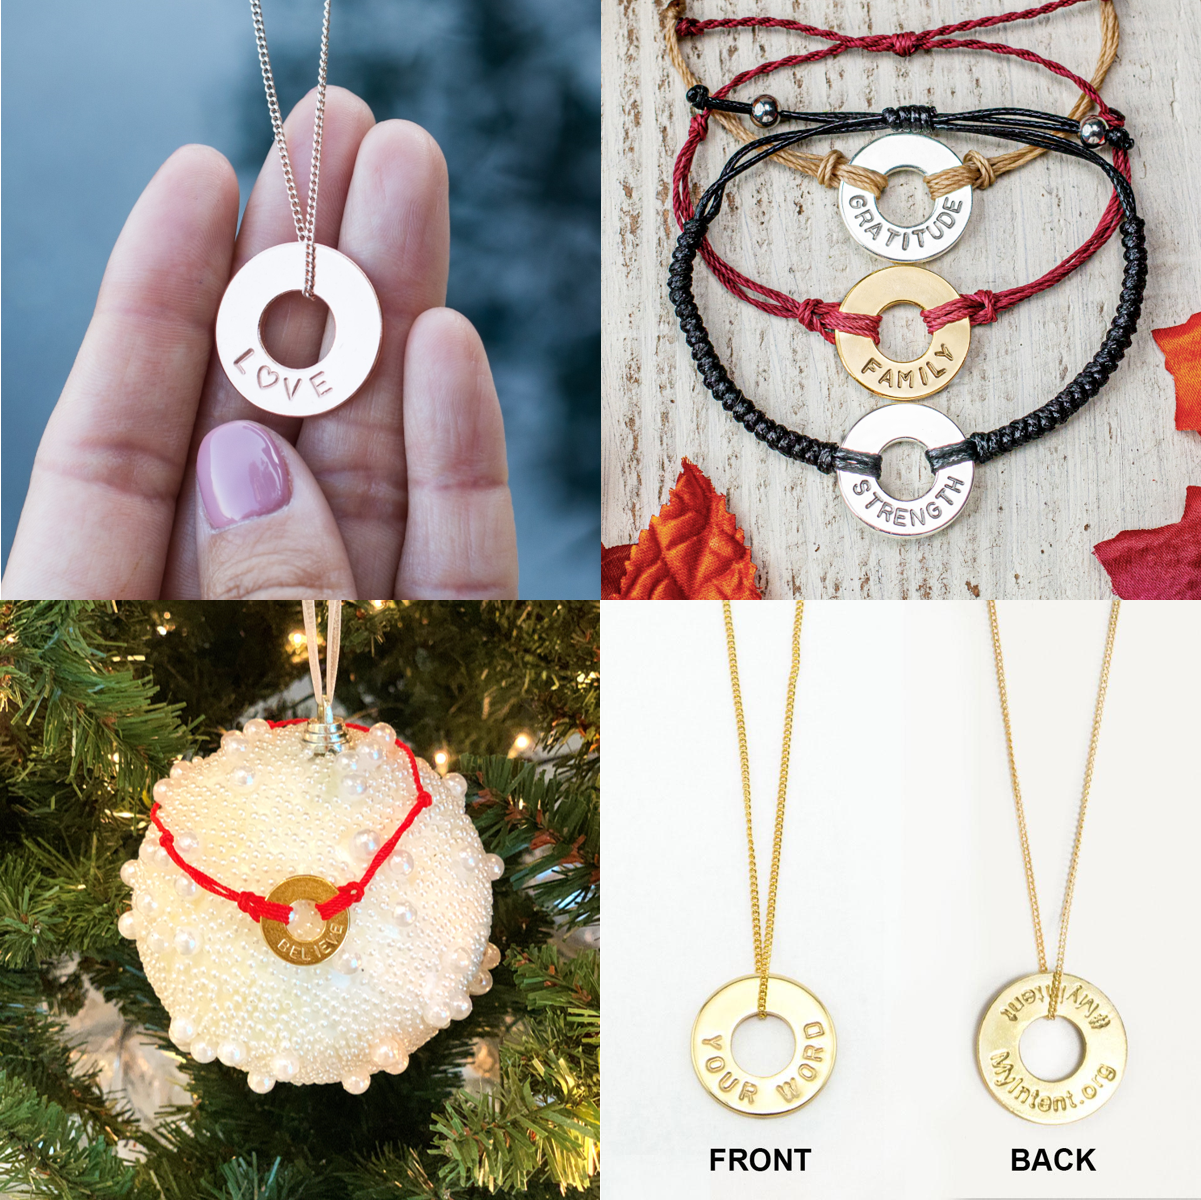 MyIntent Maker Kits are perfecting for gifting and for those who enjoy crafting/making things